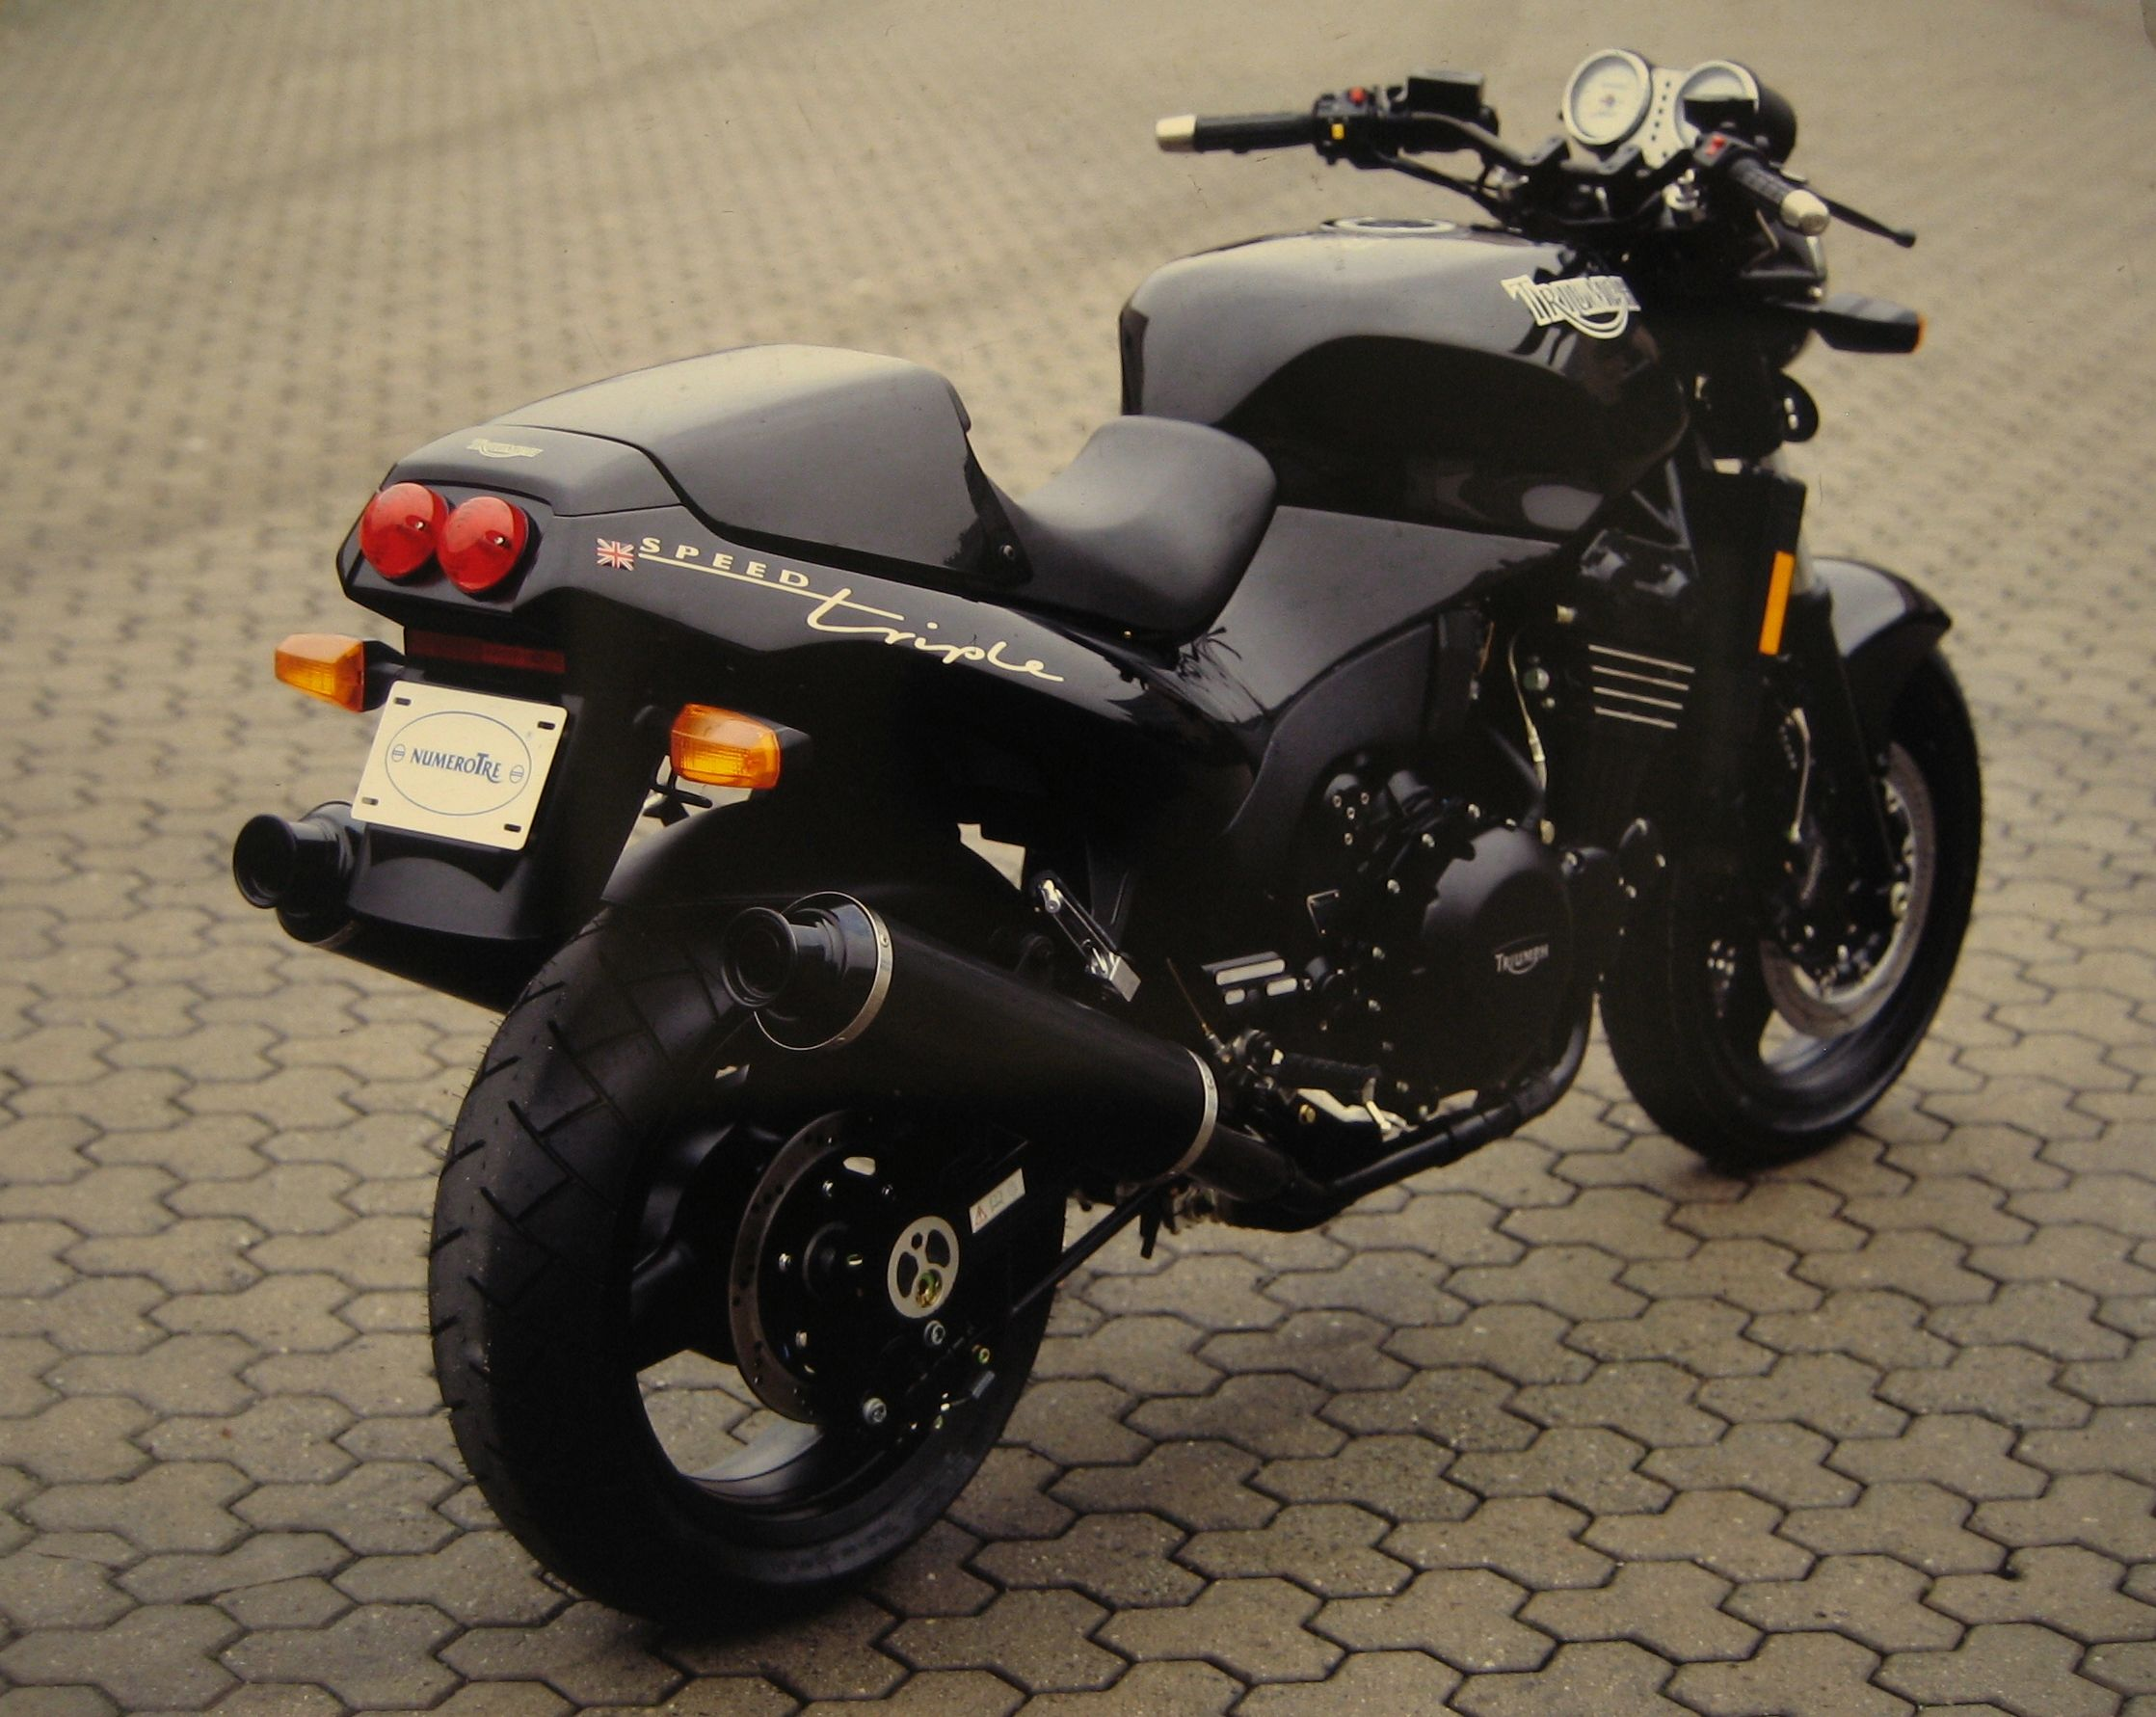 Triumph Speed Triple 900 1996 images #159247